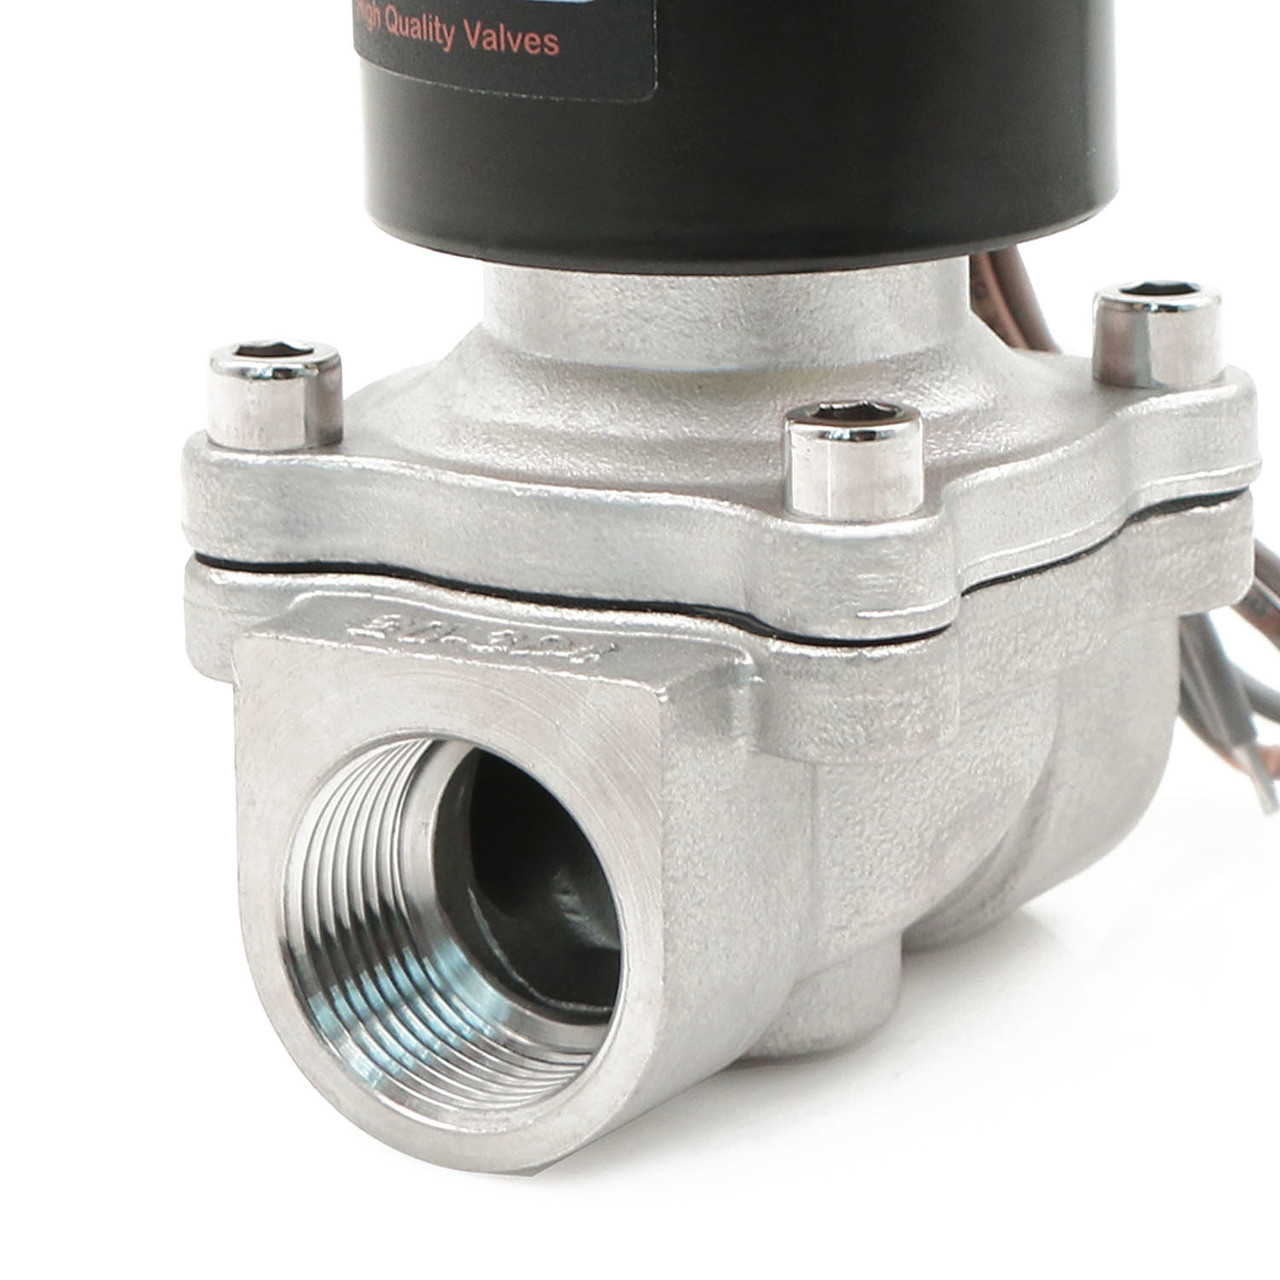 """U.S. Solid Electric Solenoid Valve- 3/4"""" 24V DC Solenoid Valve Stainless Steel Body Normally Closed, VITON SEAL"""